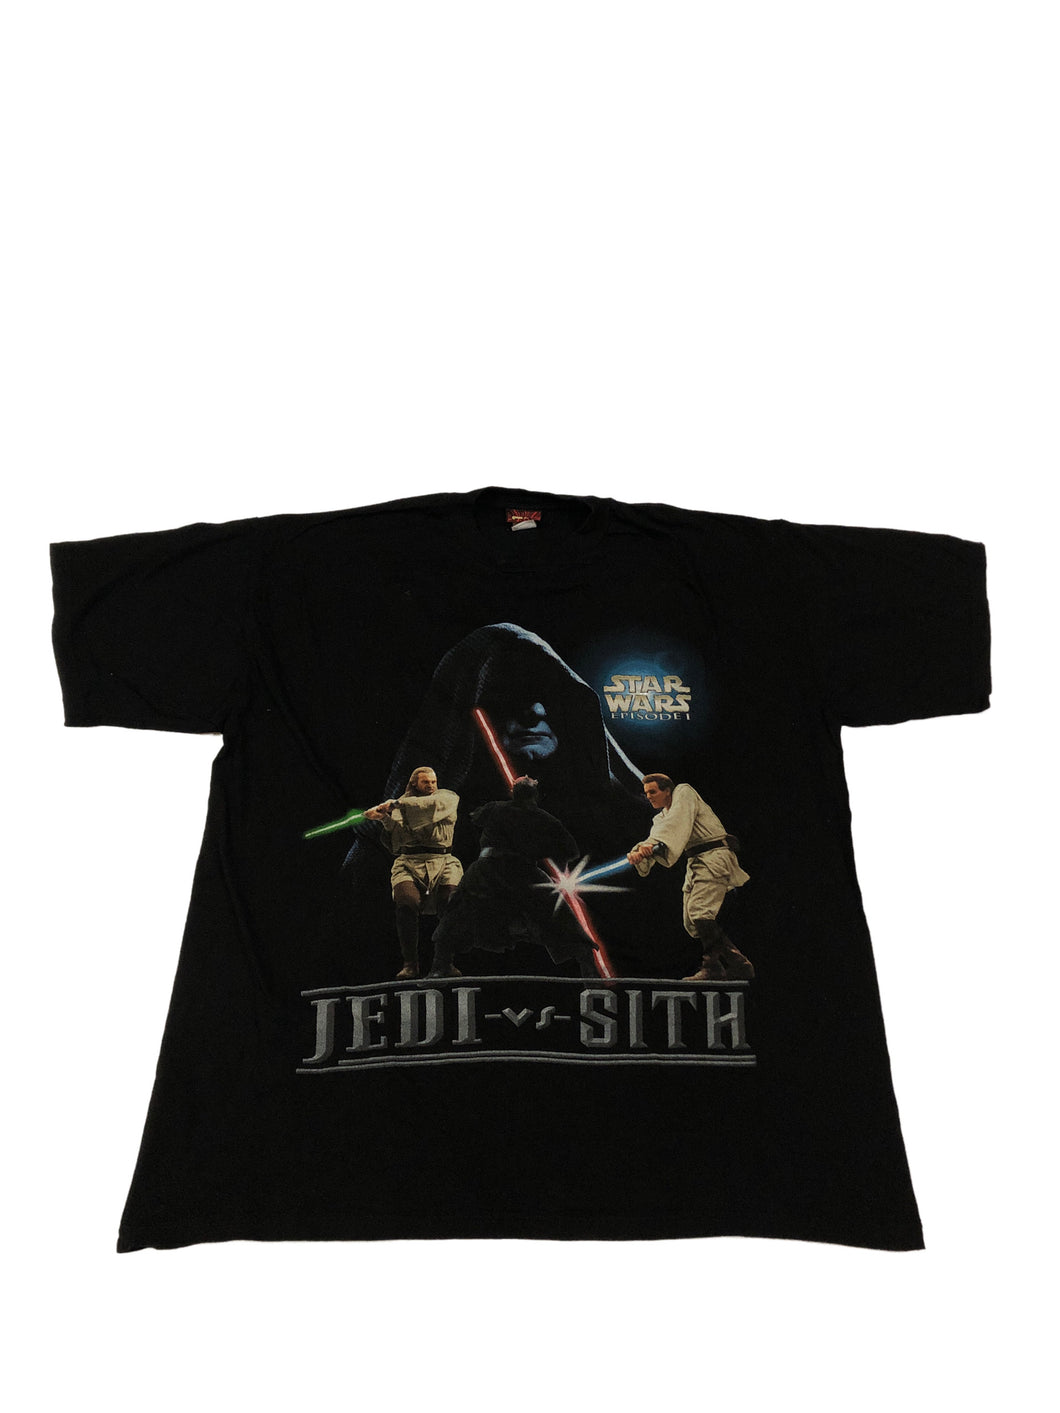 Star Wars Jedi vs Sith Tee